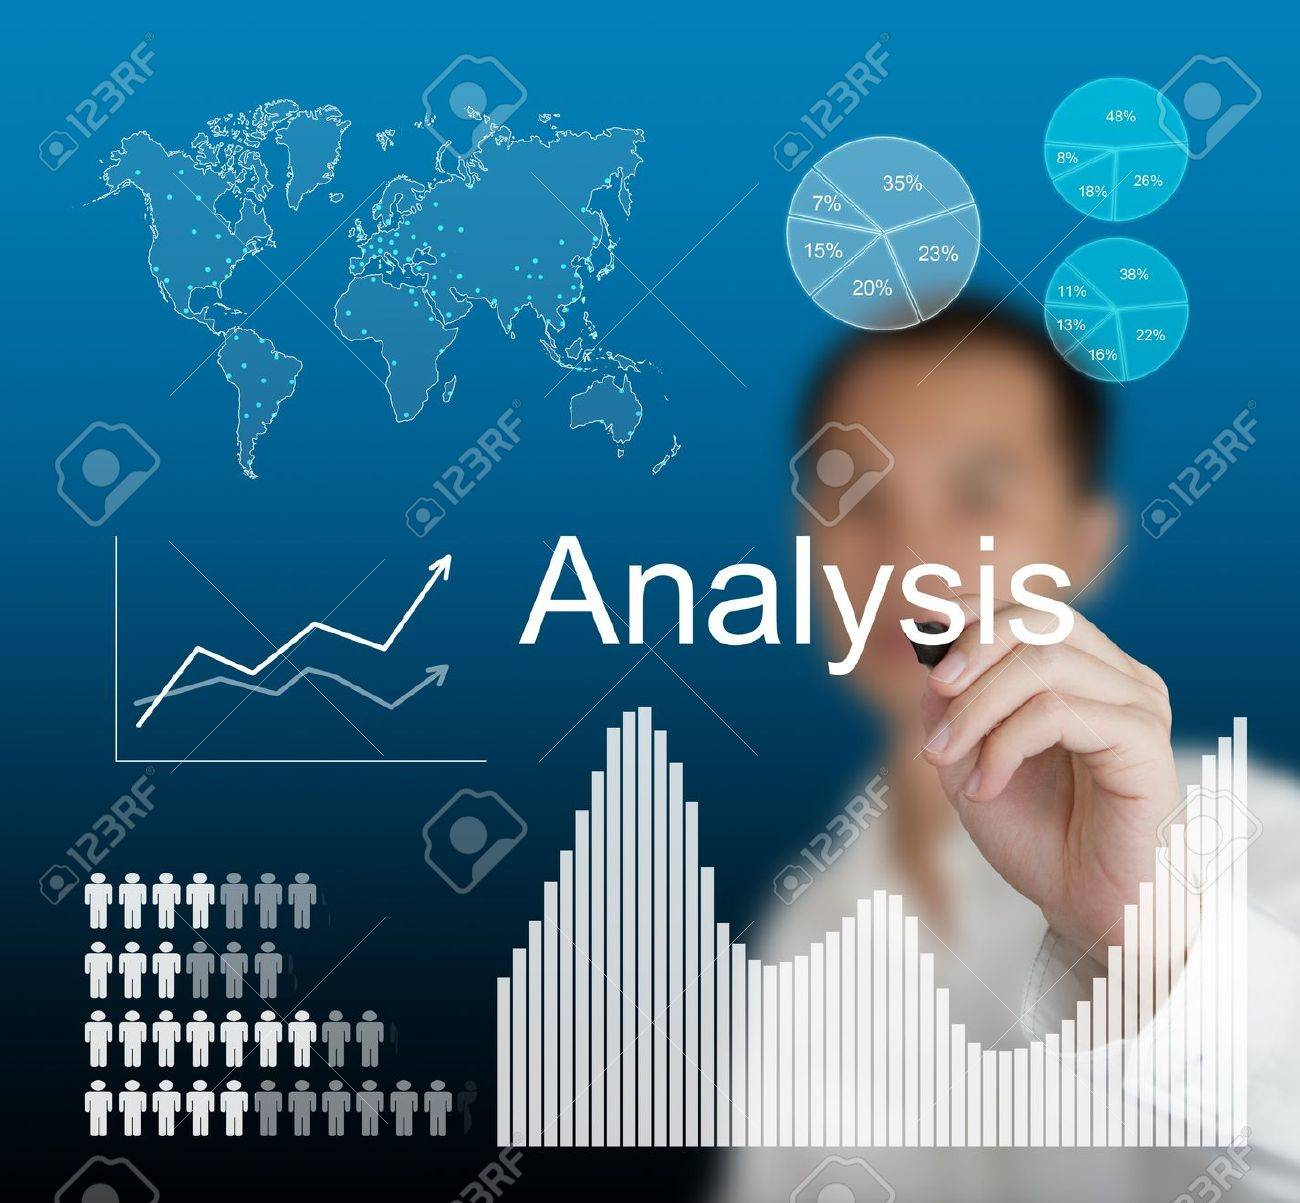 Business Man Writing Data Analysis Stock Photo, Picture And ...